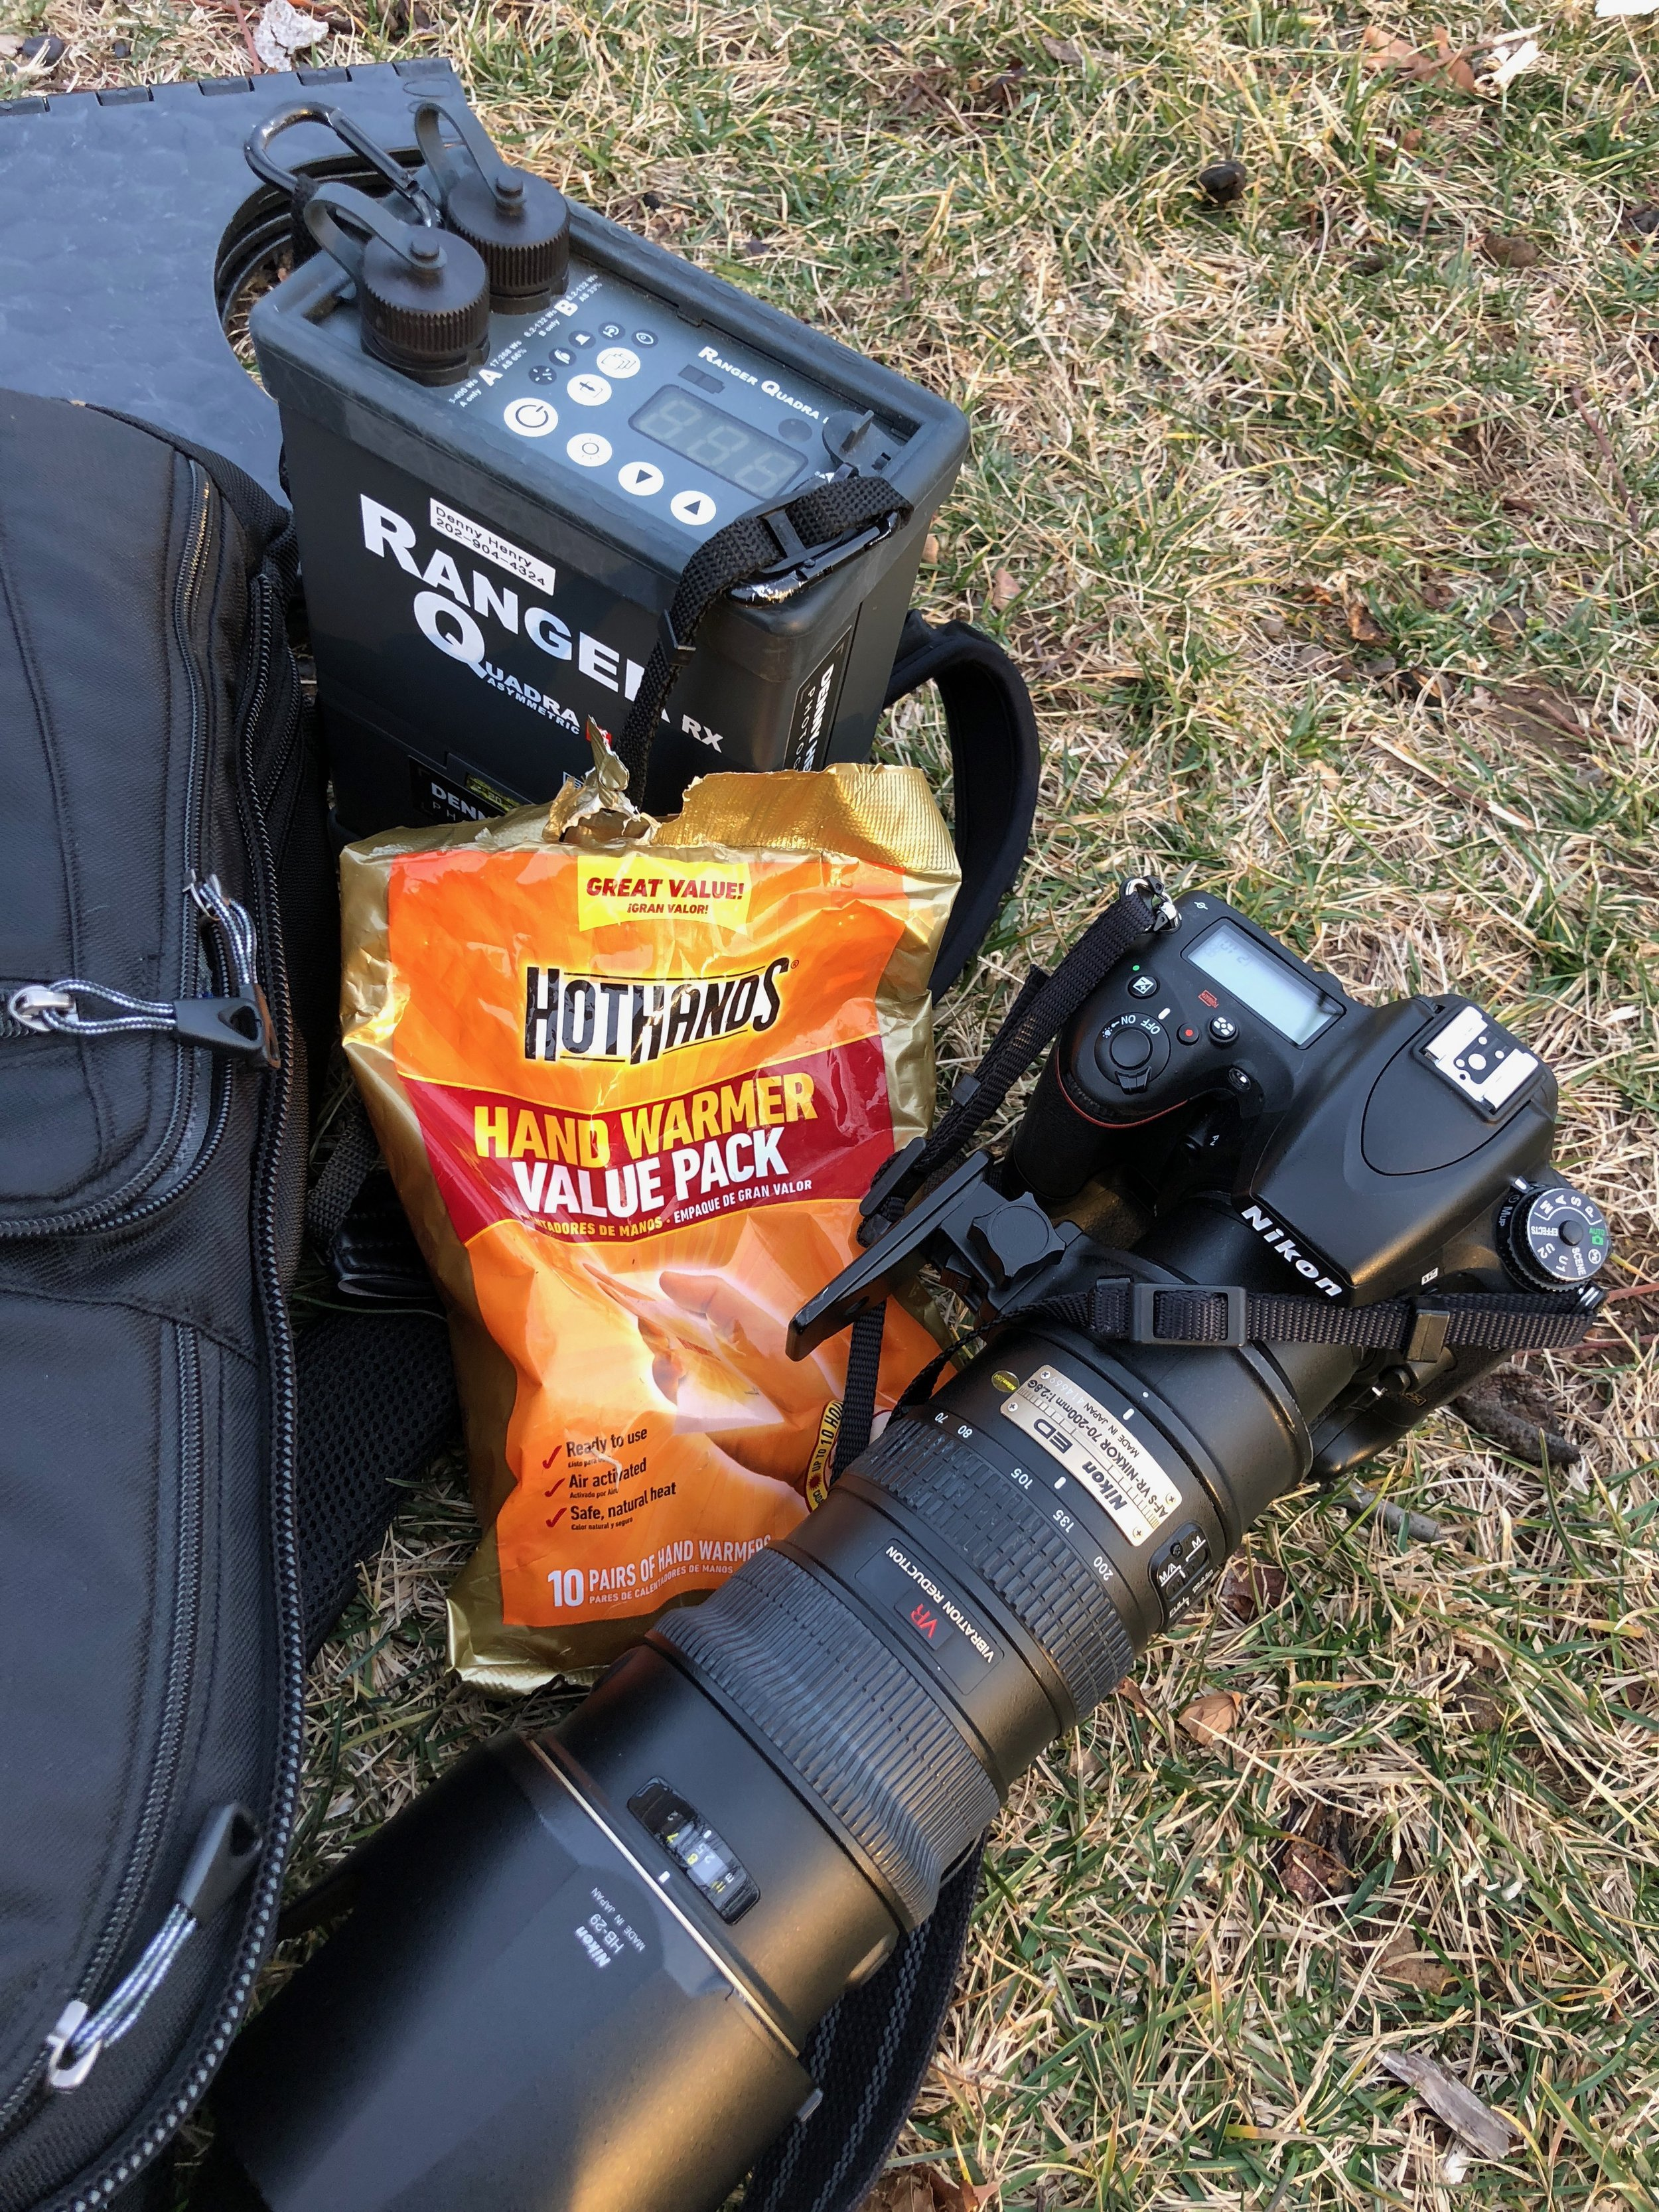 Cold Weather Photo Gear